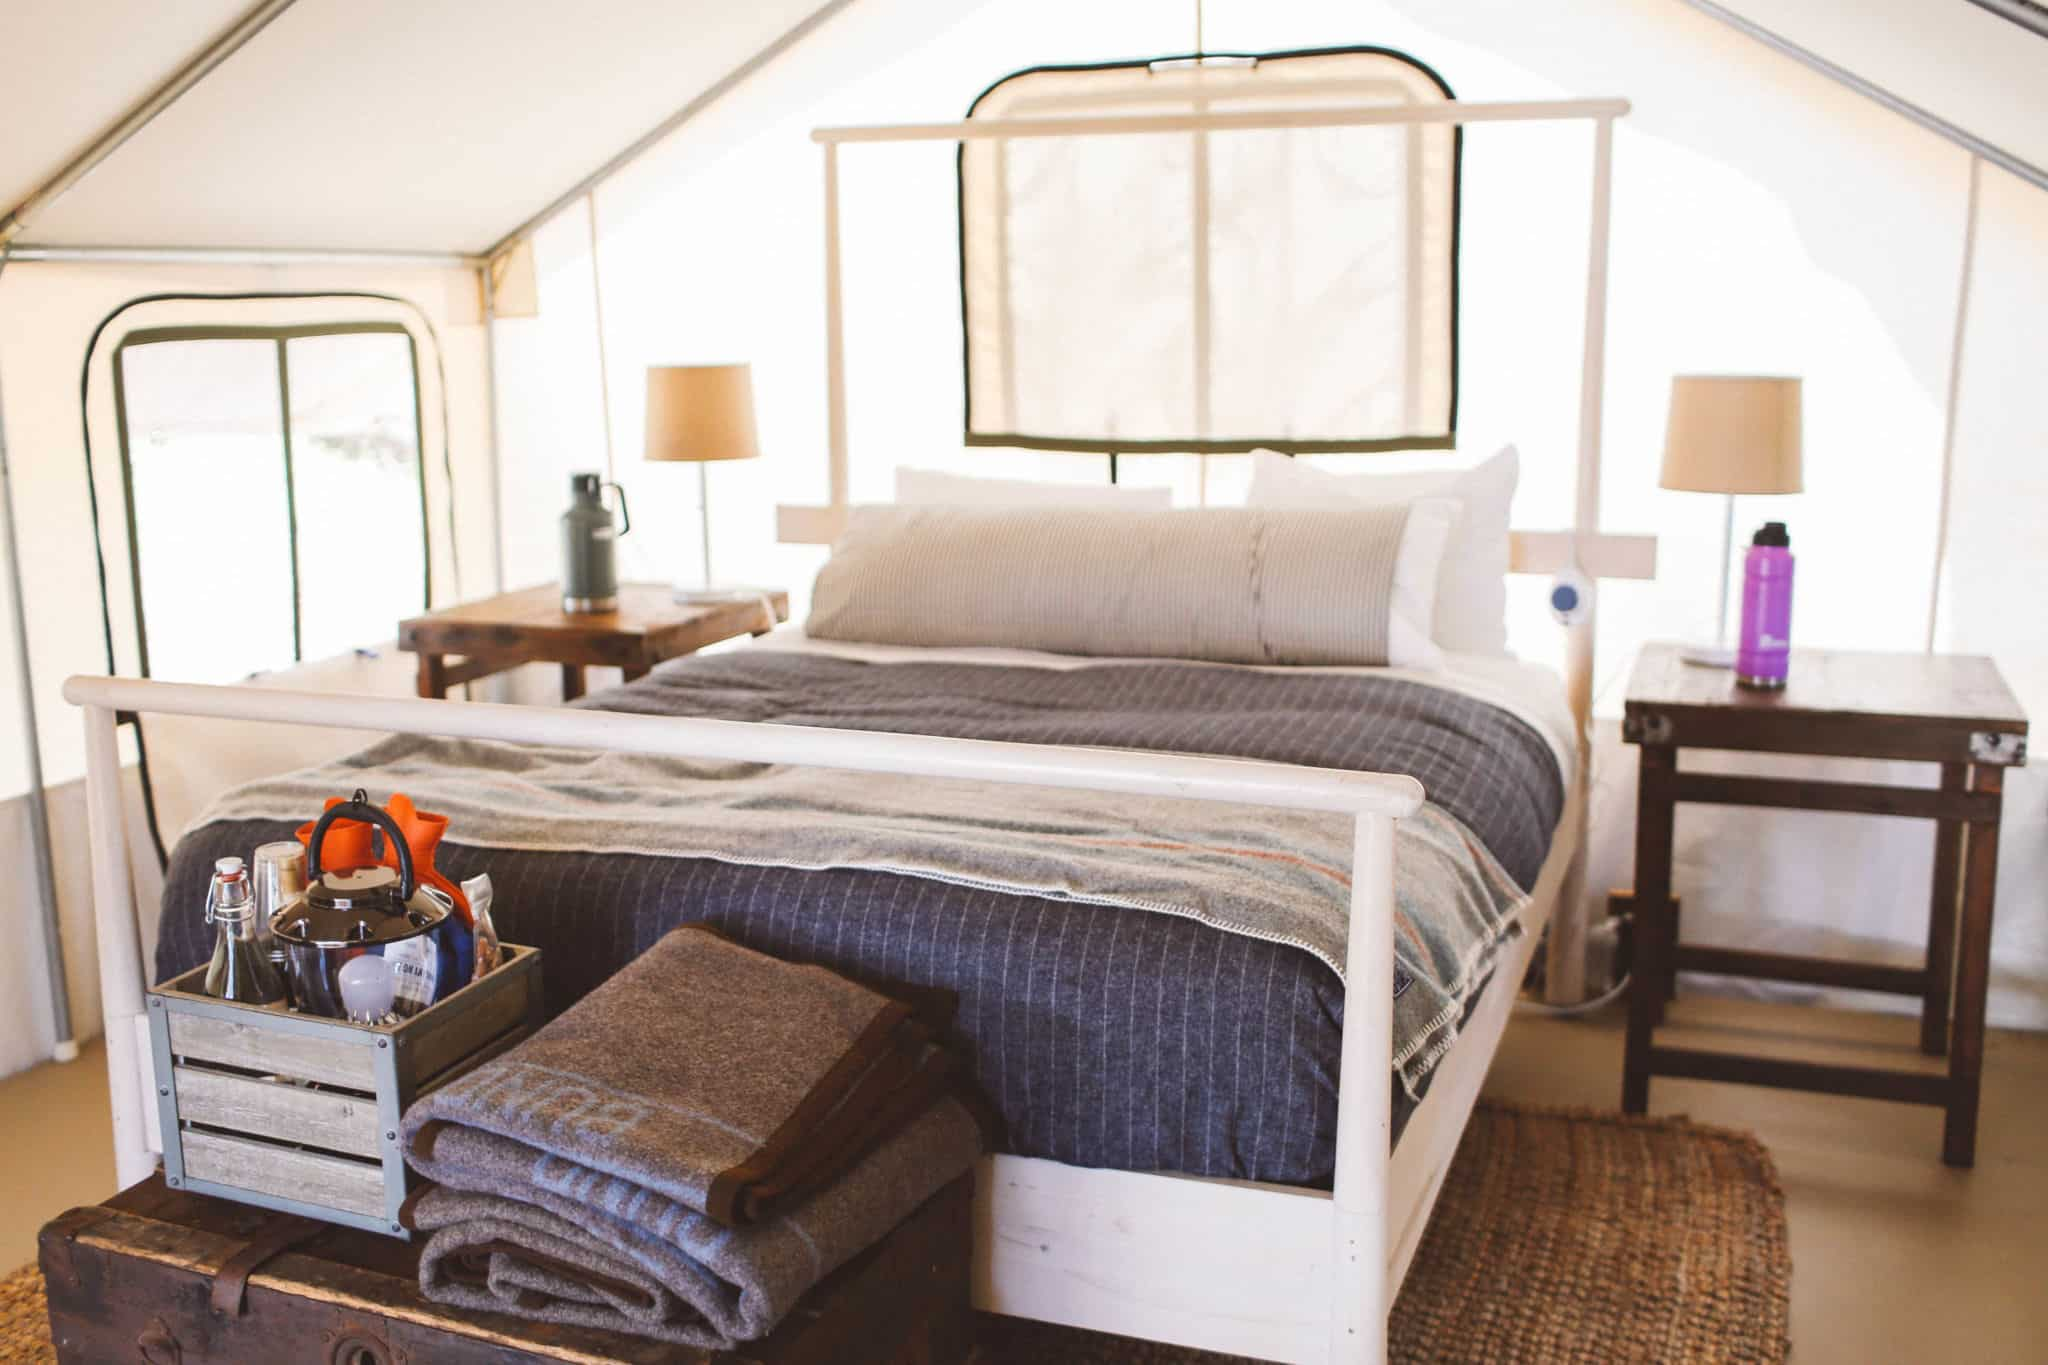 Bed and side tables in tent